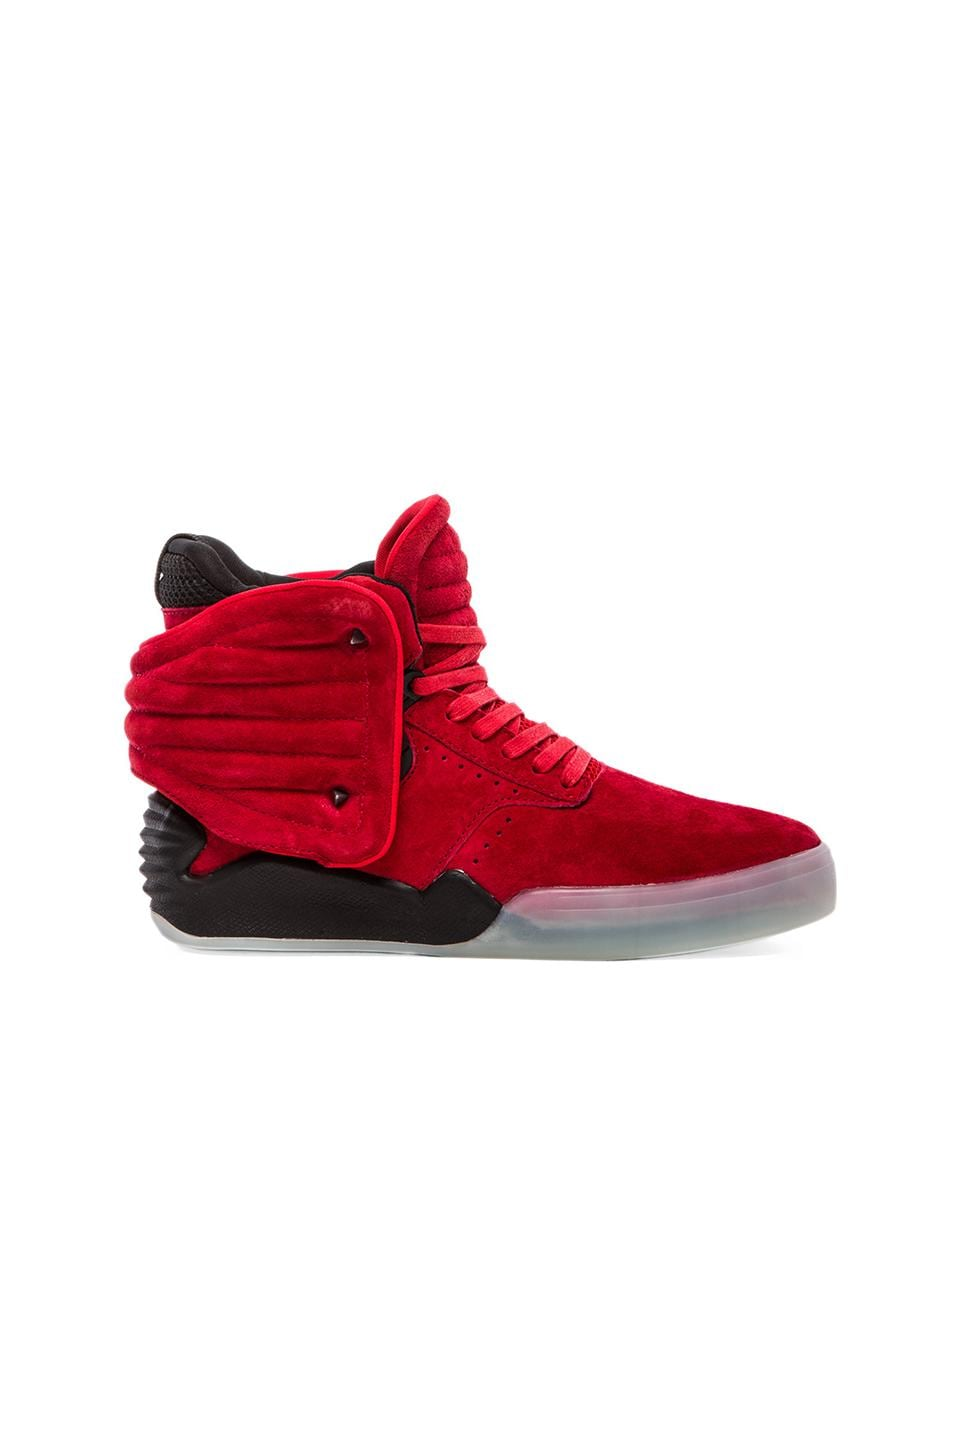 Supra Skytop 1V in Red